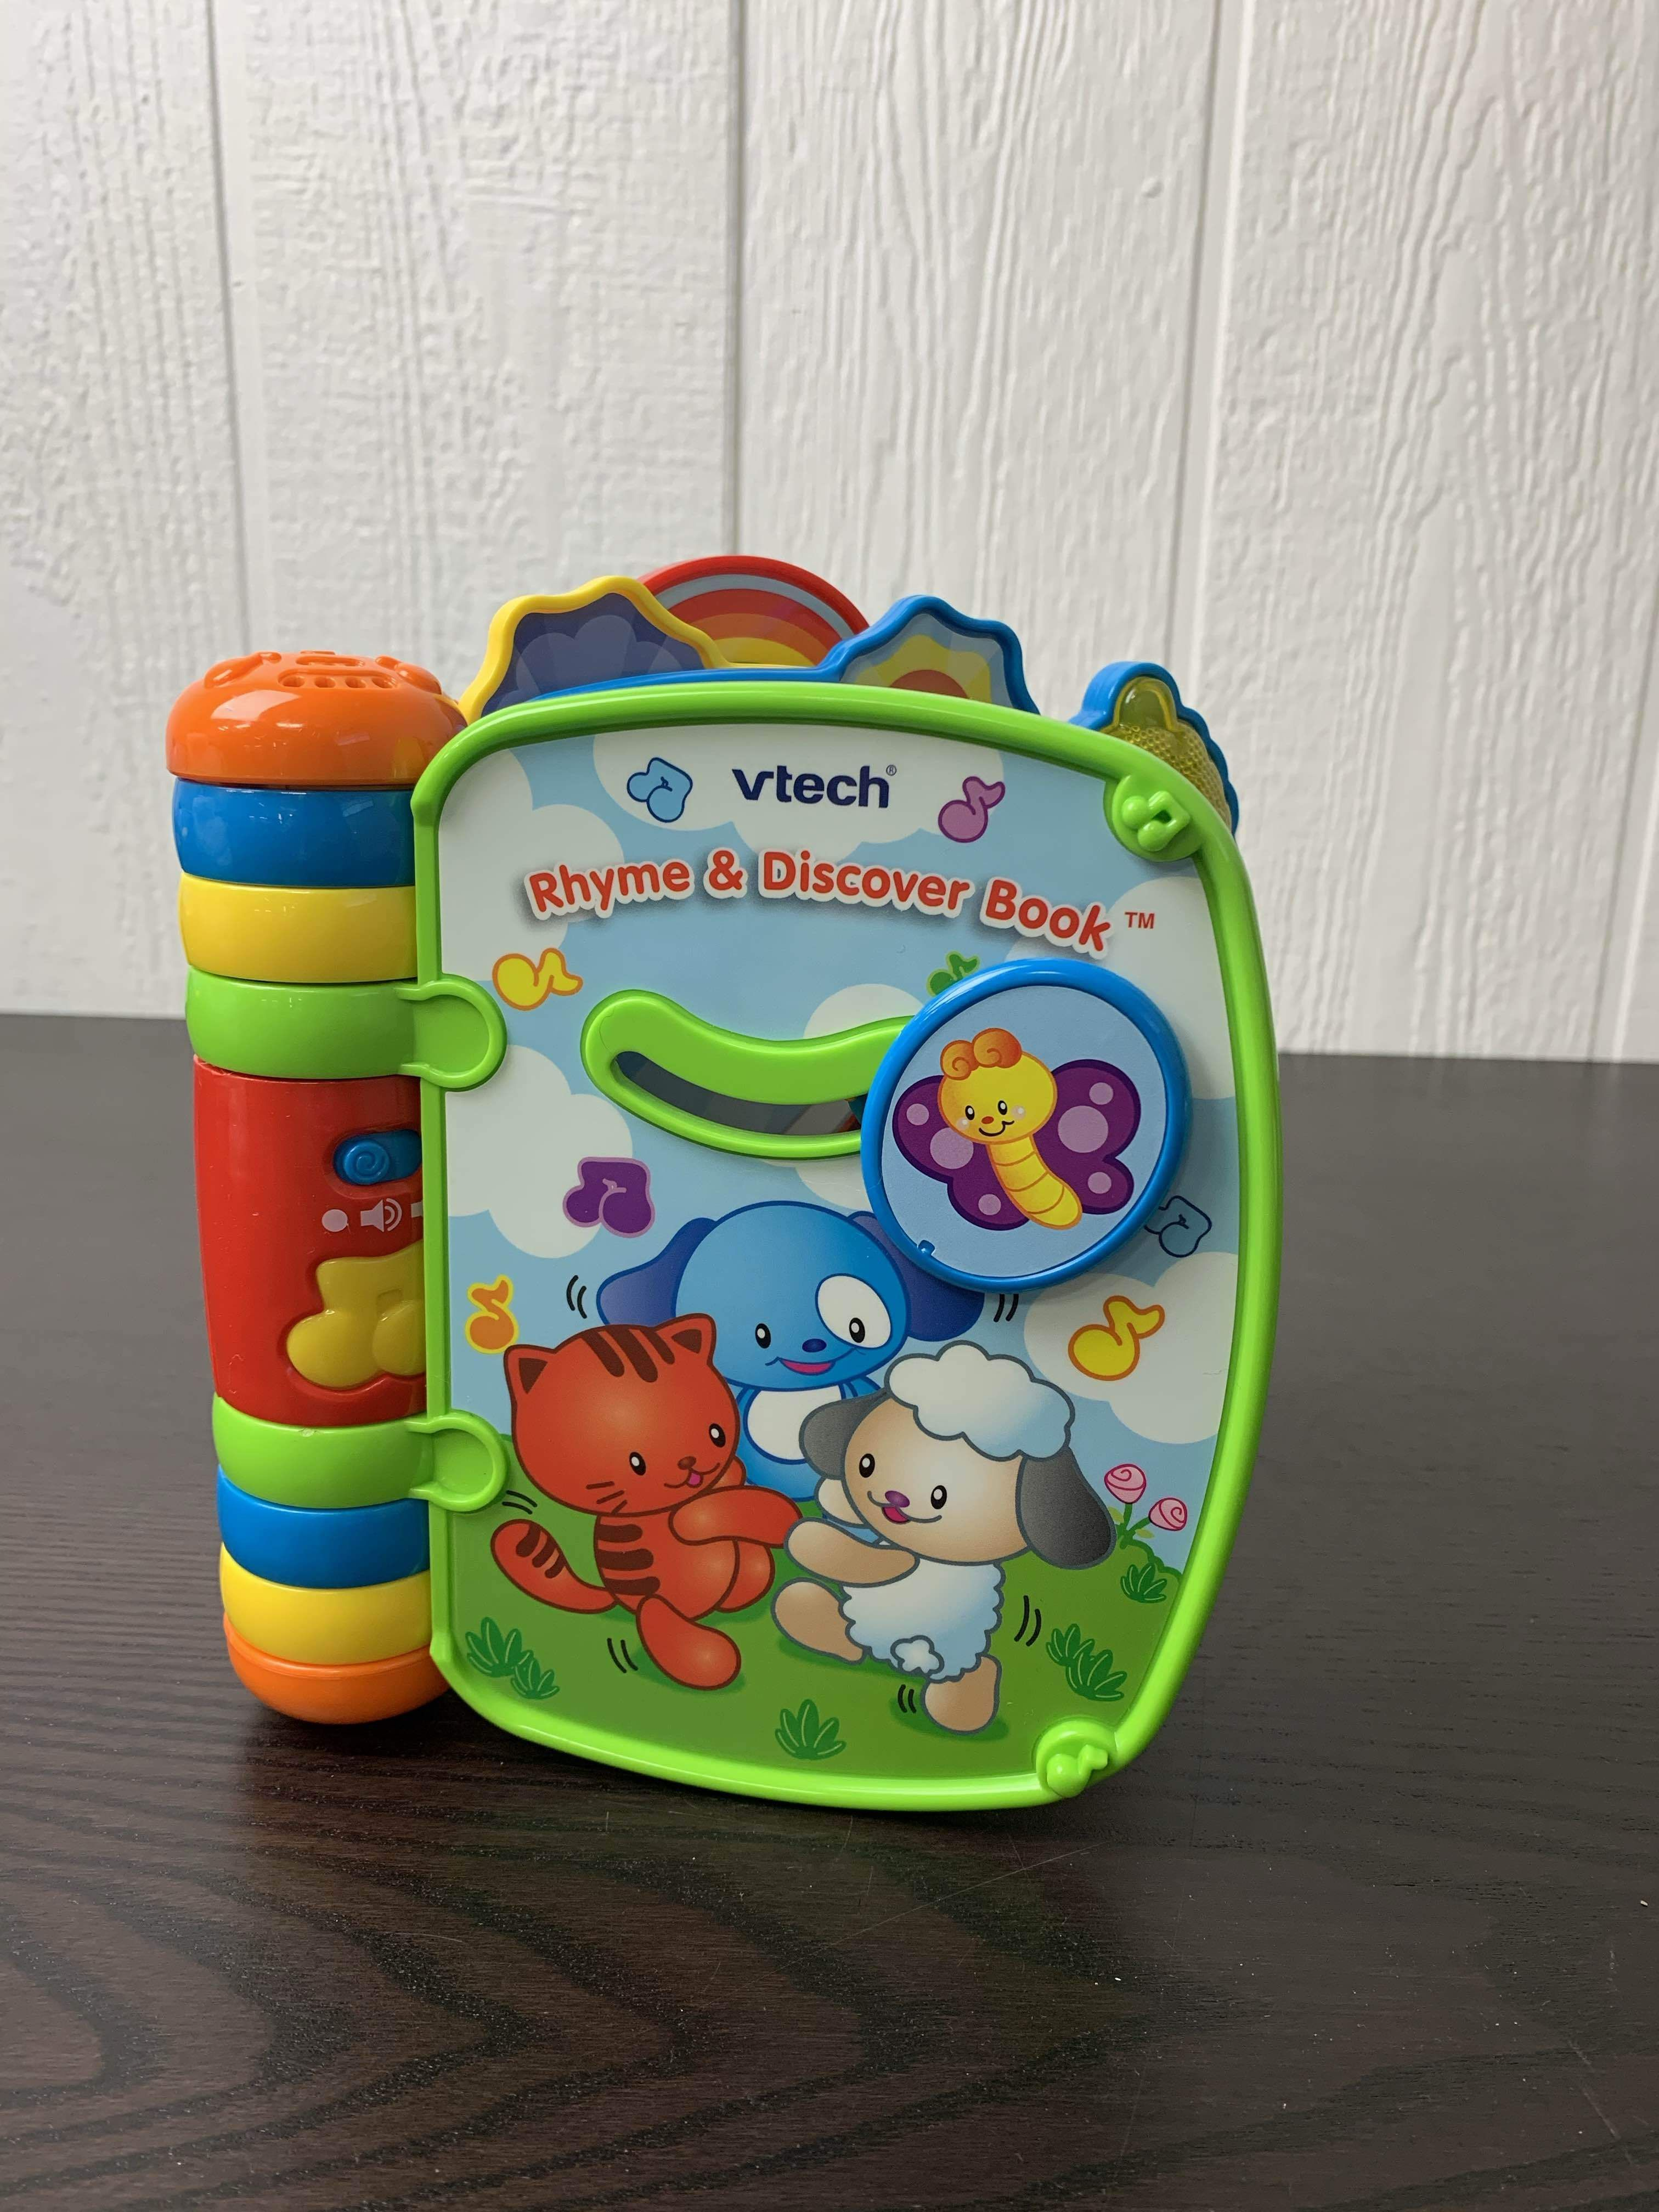 Vtech Rhyme Discover Book In 2021 Rhymes Educational Books Vtech